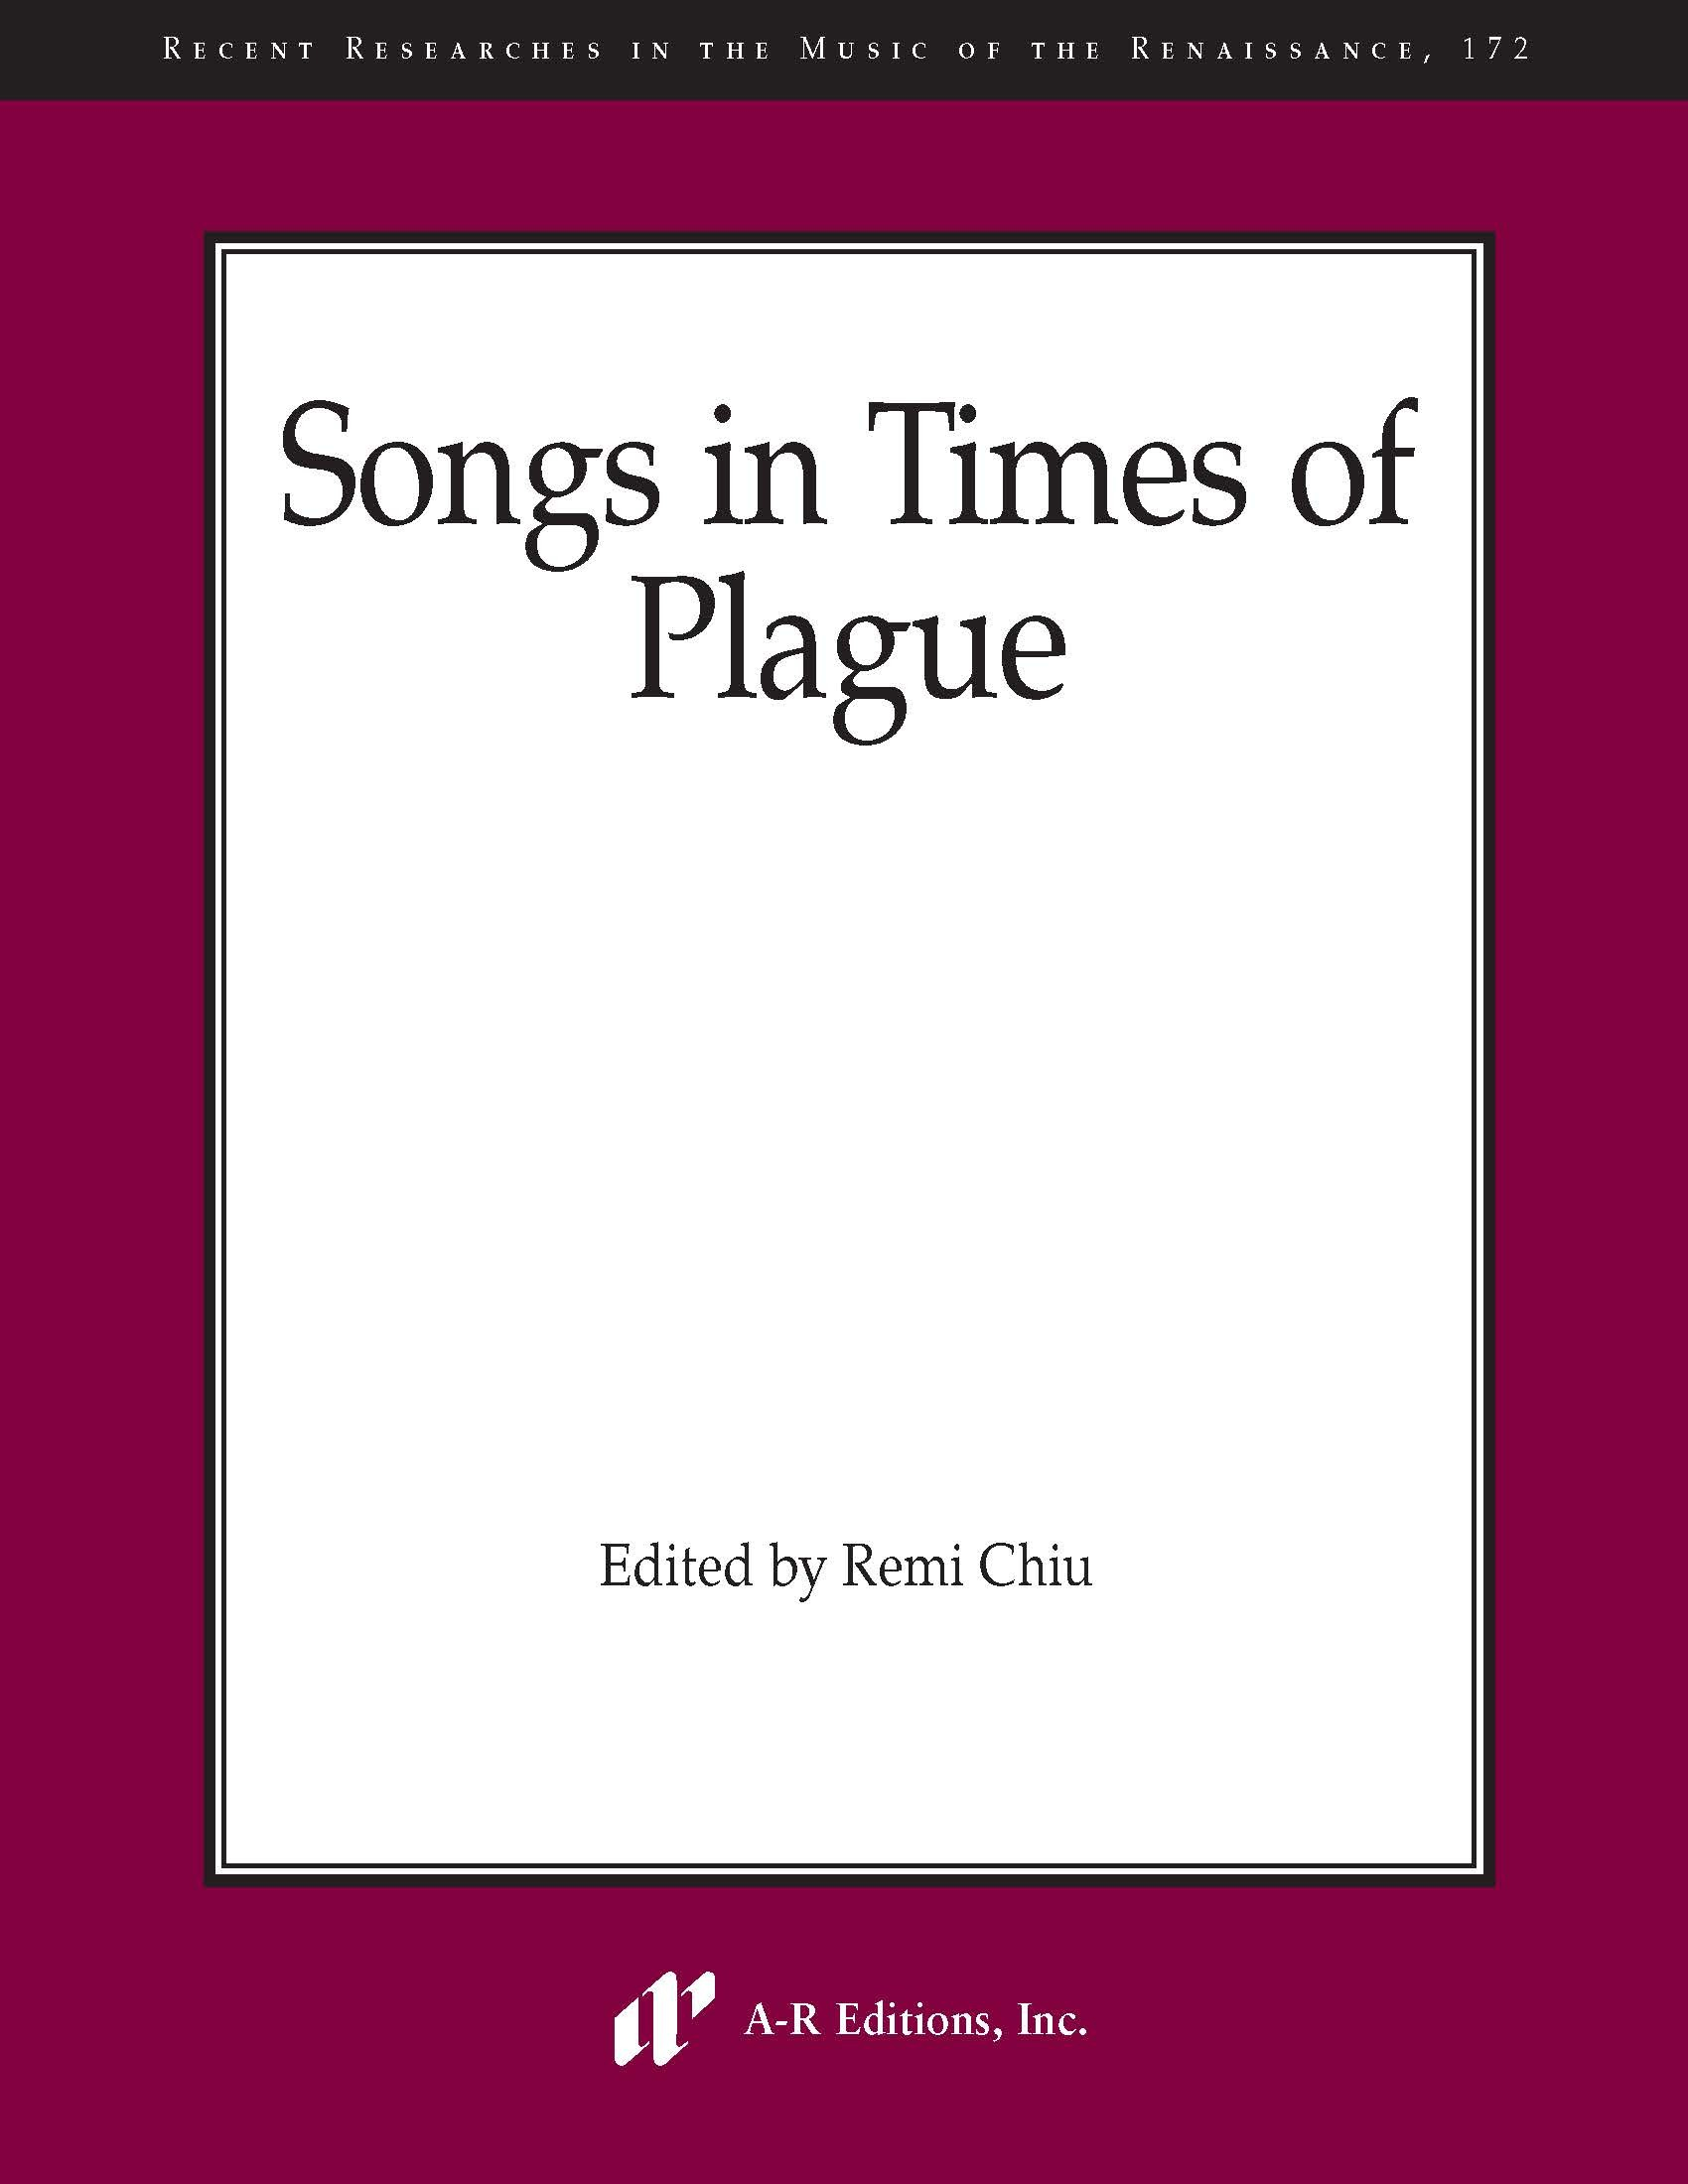 Songs in Times of Plague